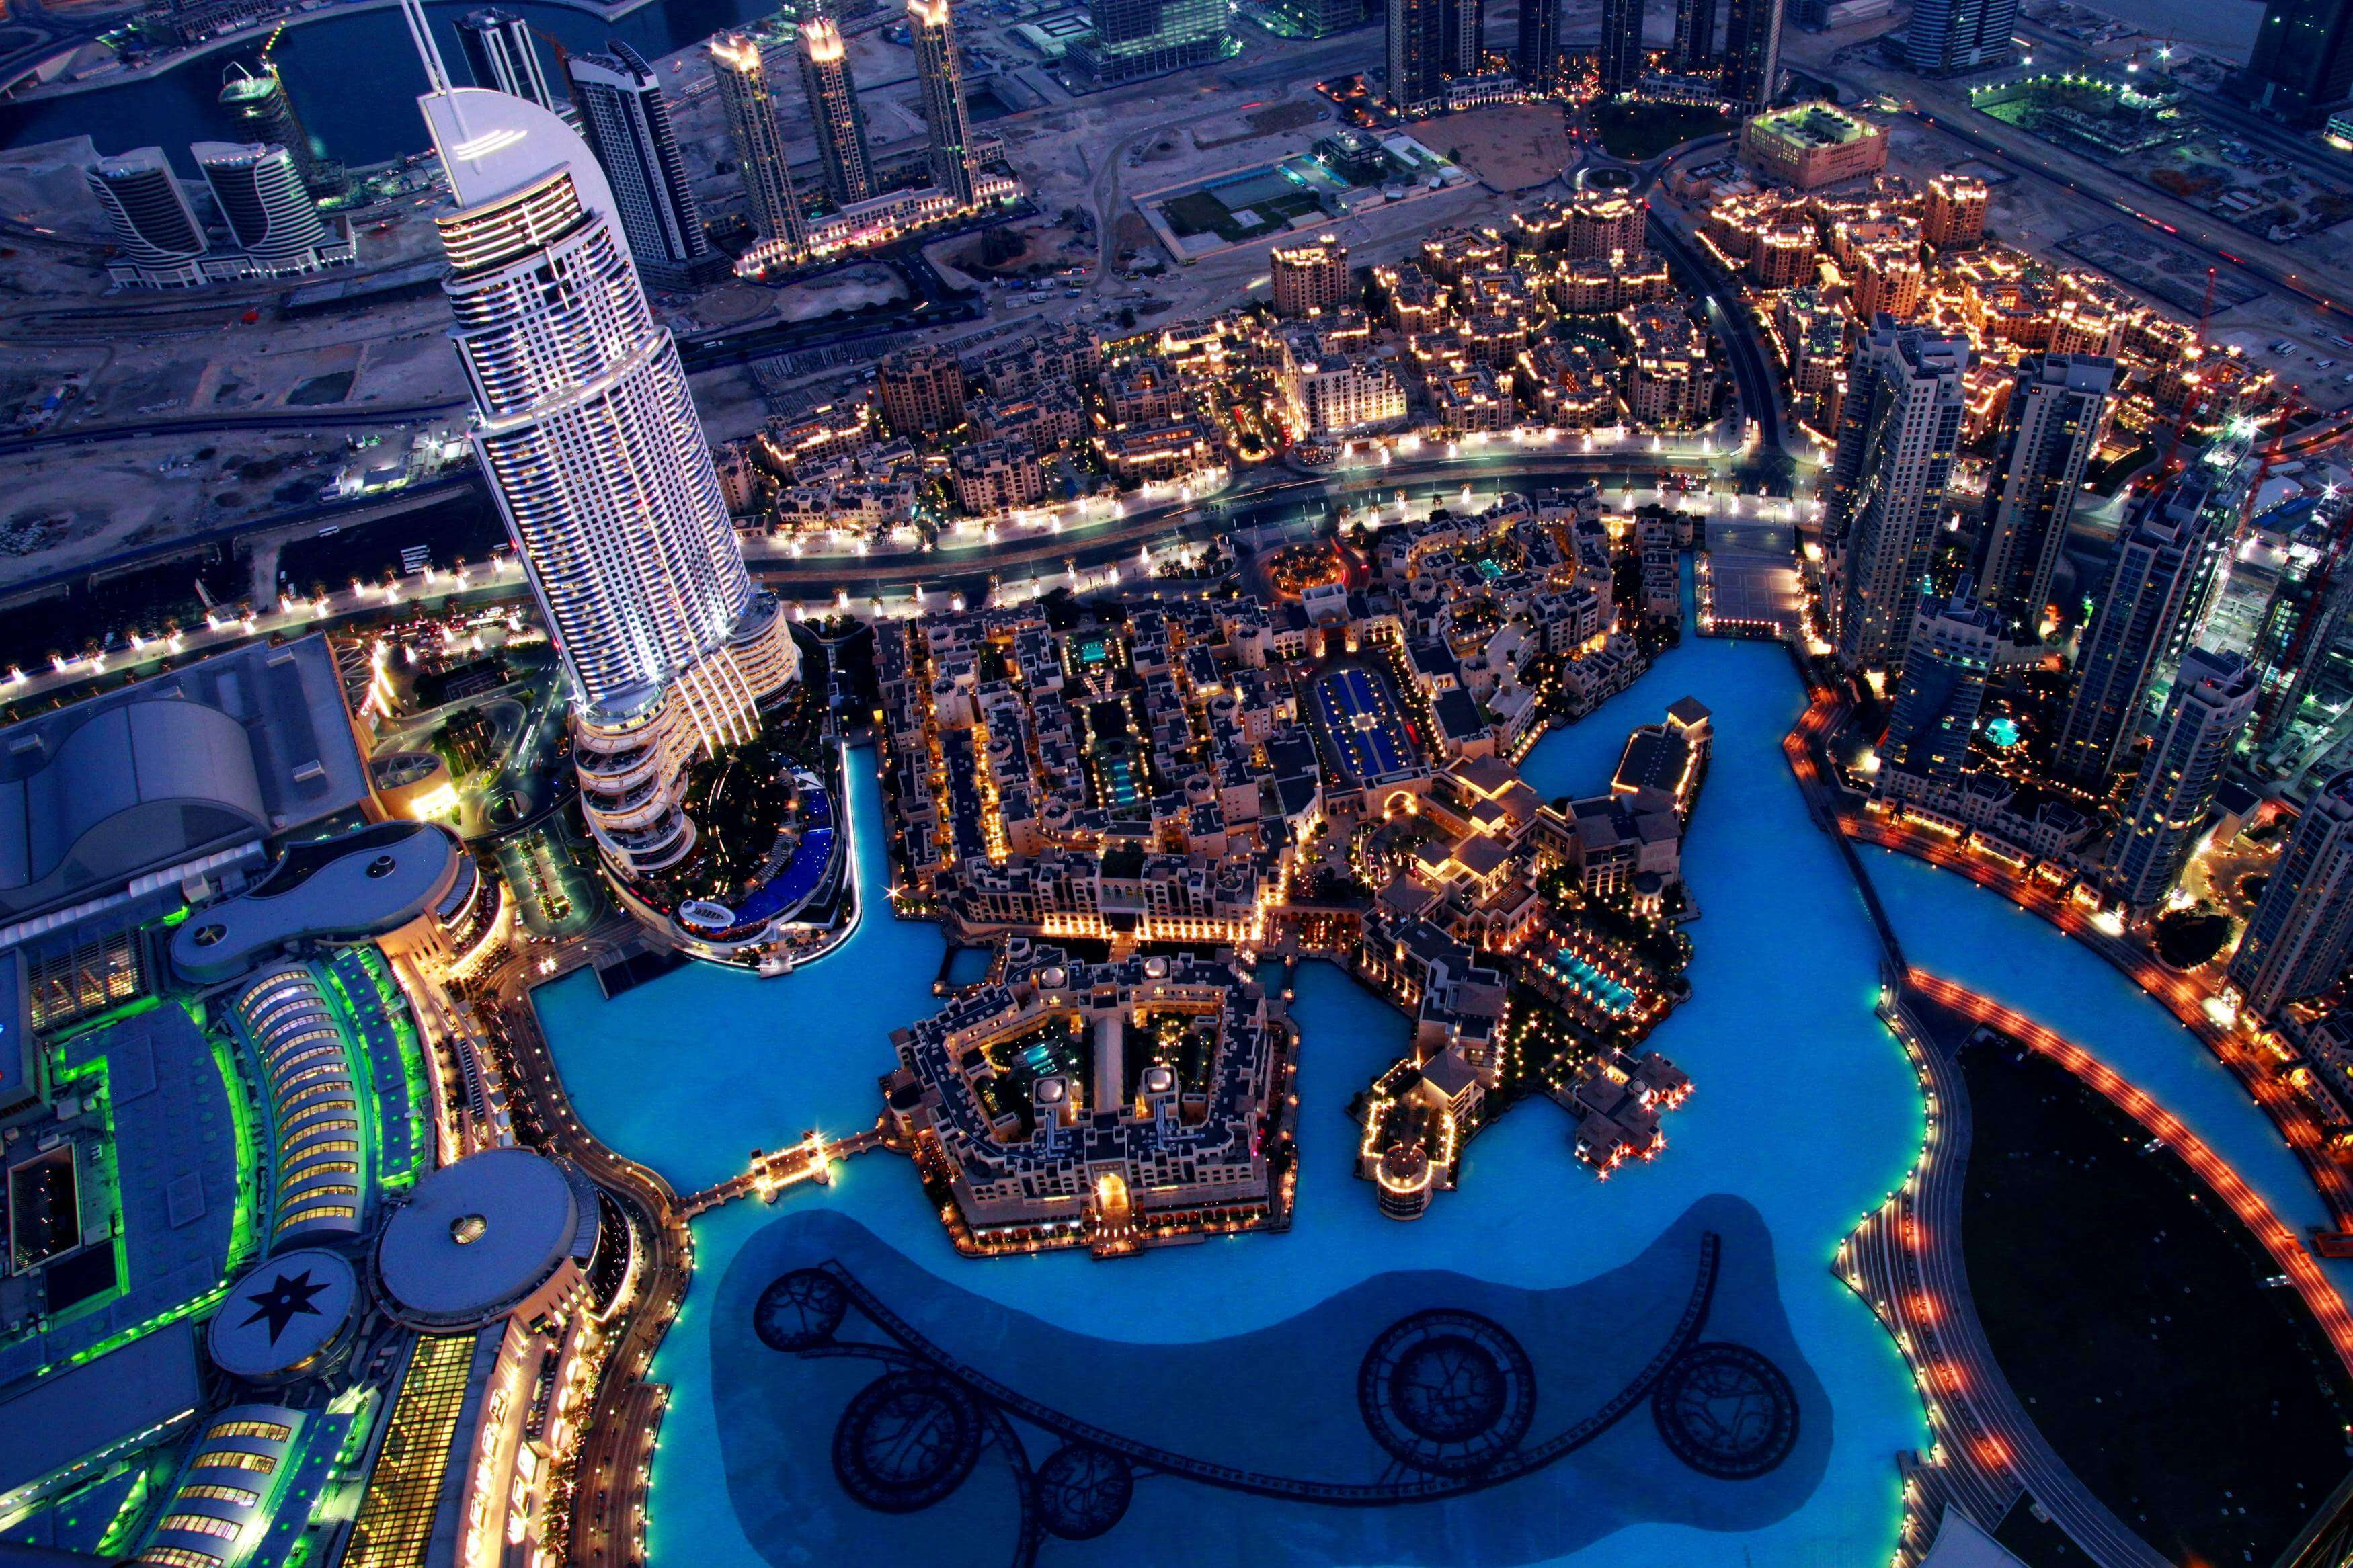 INCORPORATING YOUR BUSINESS IN DUBAI